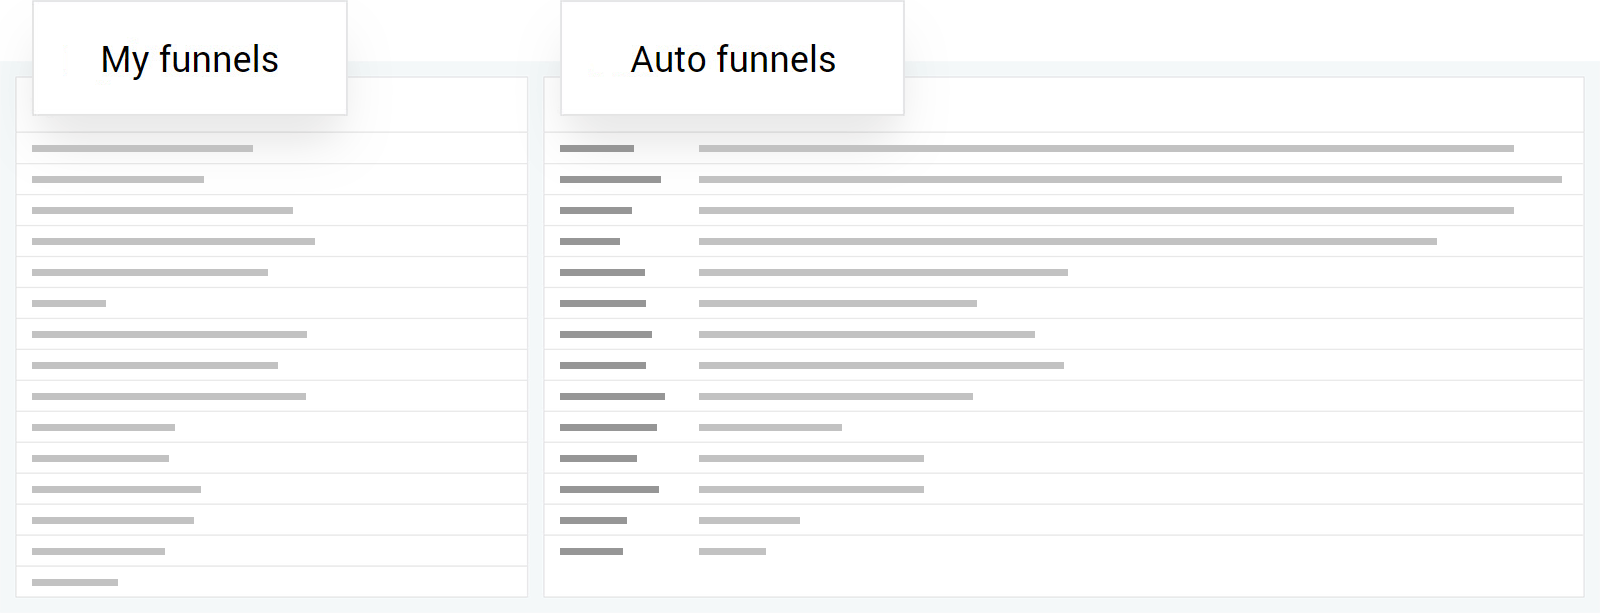 Automated funnel creation